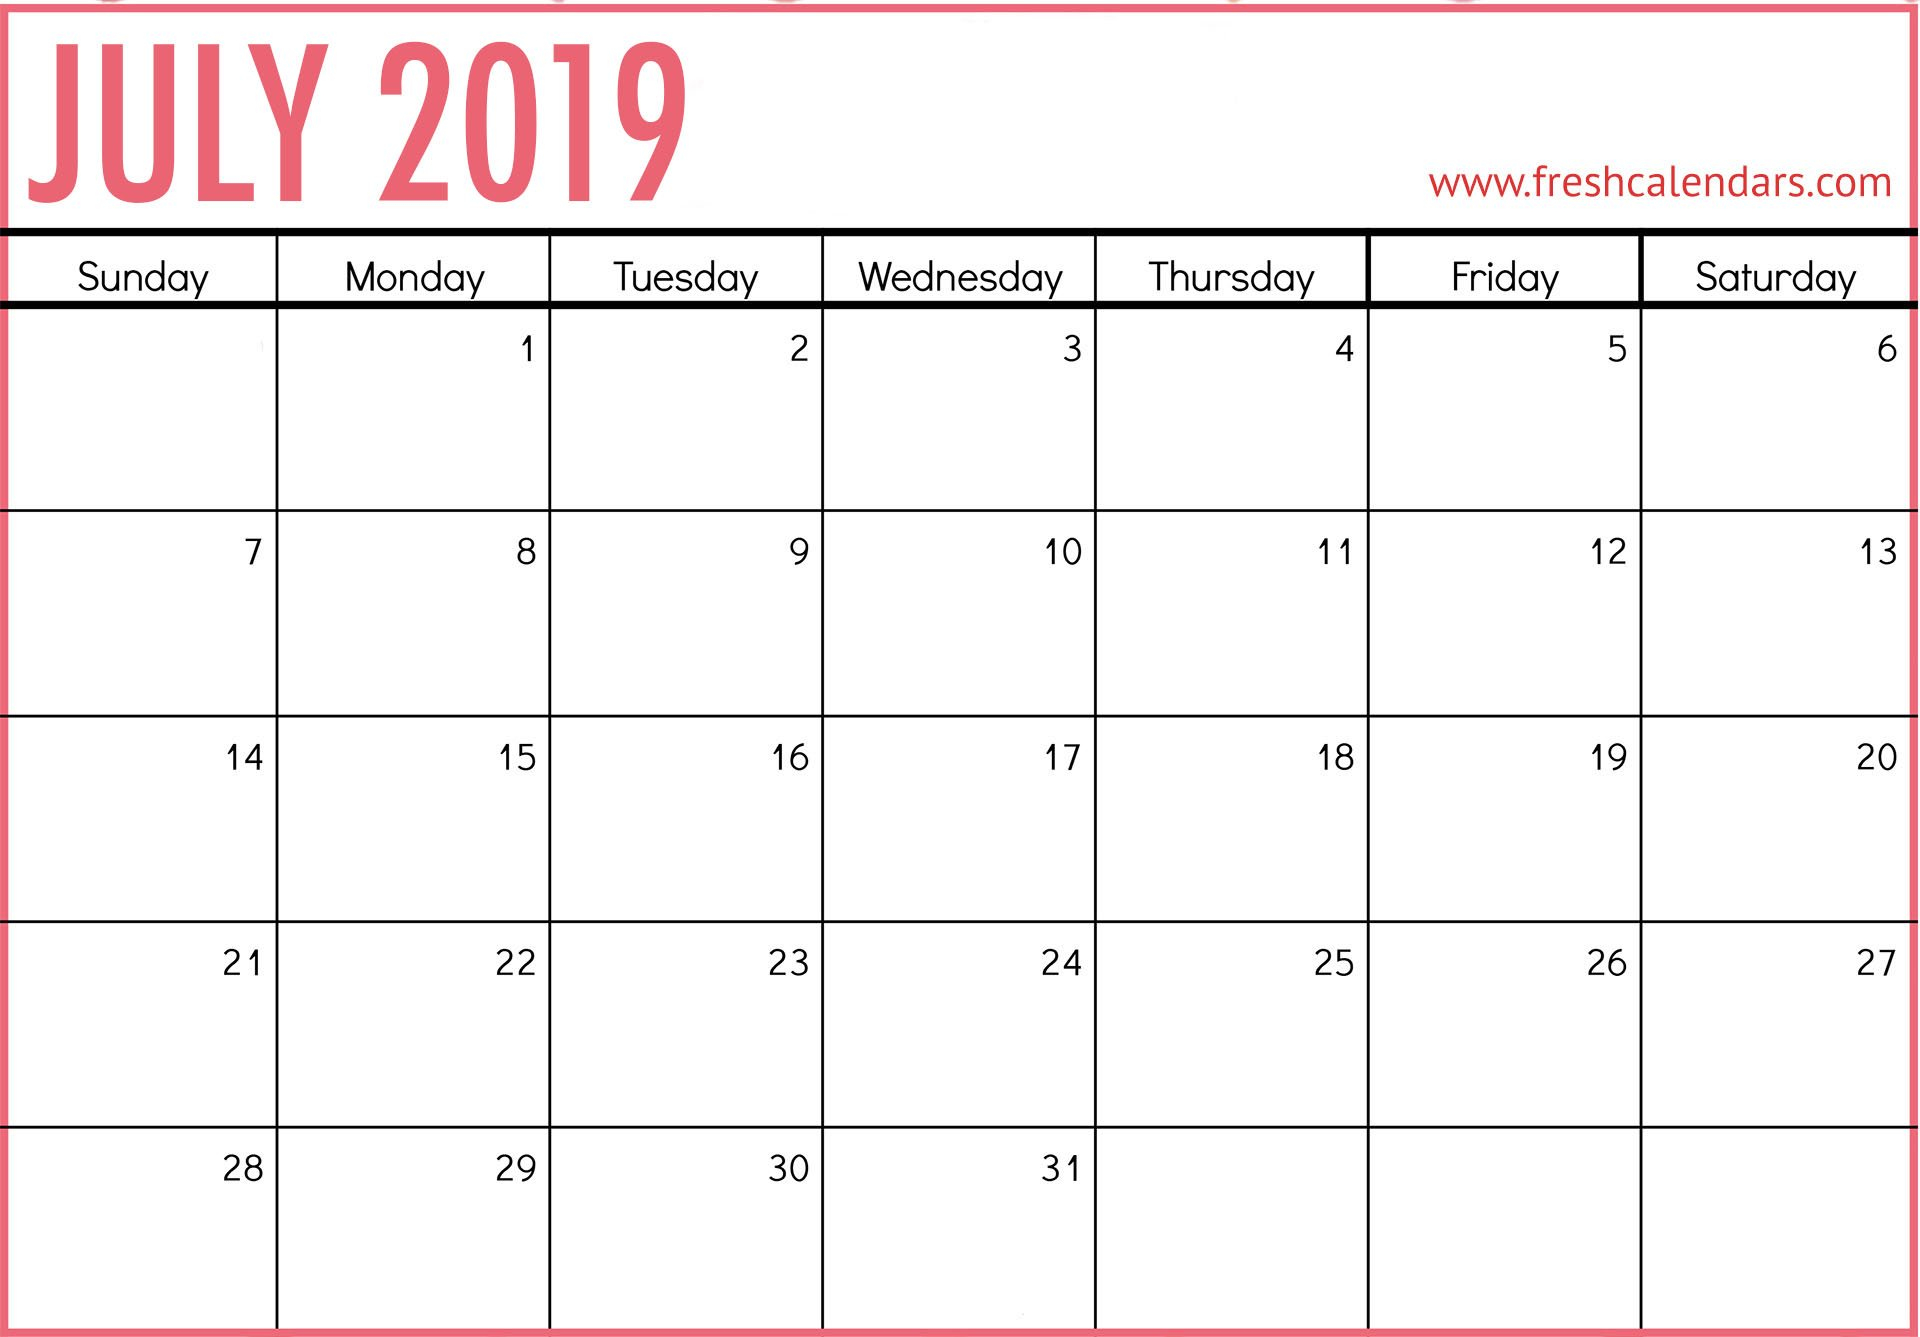 July 2019 Calendar Printable - Fresh Calendars Calendar 2019 July